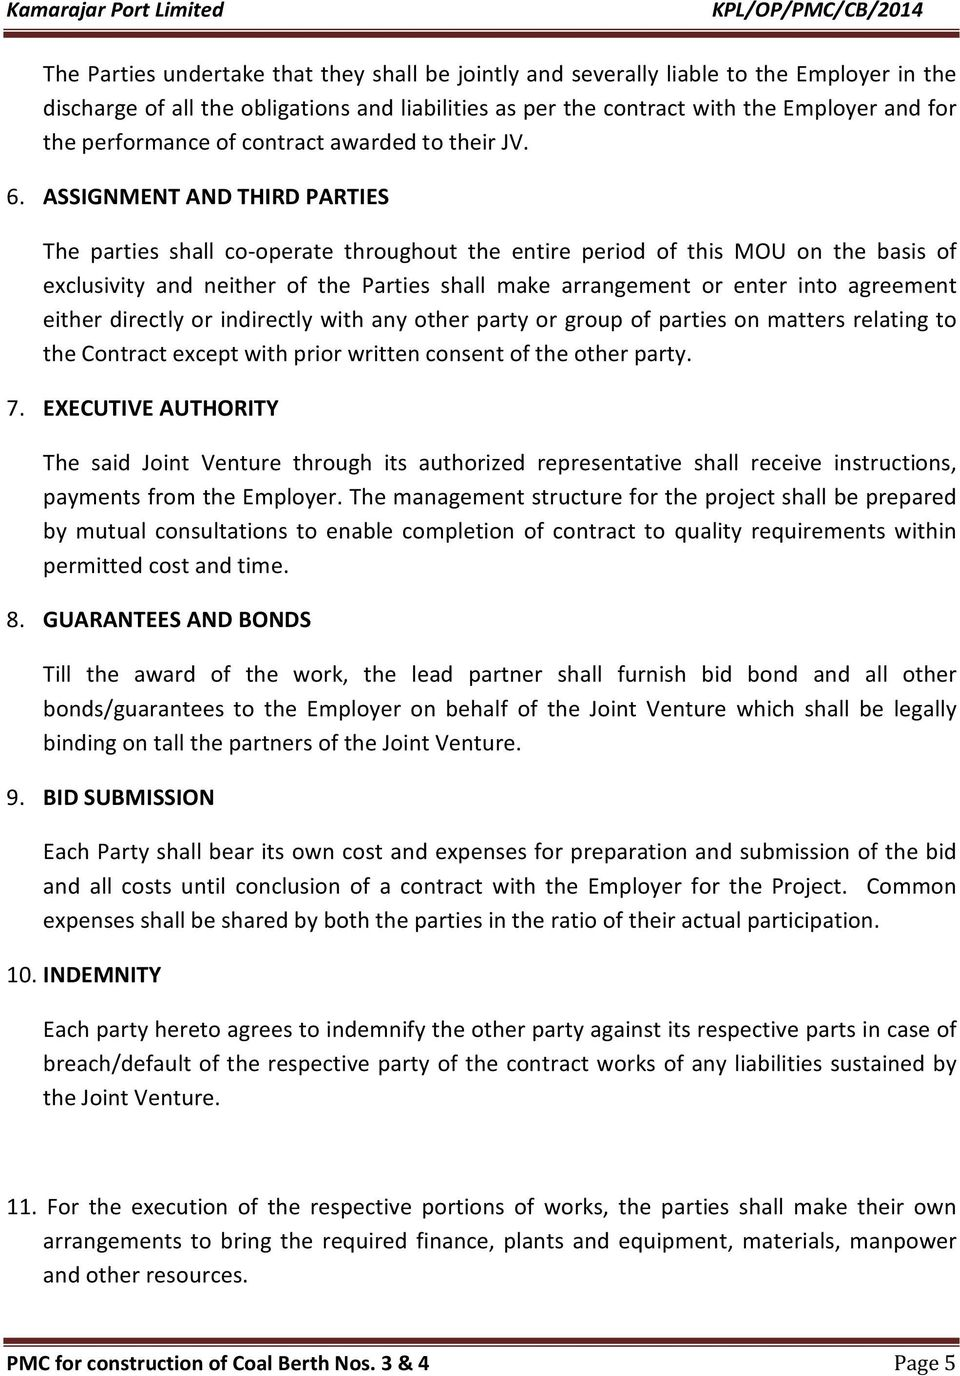 ASSIGNMENT AND THIRD PARTIES The parties shall co-operate throughout the entire period of this MOU on the basis of exclusivity and neither of the Parties shall make arrangement or enter into